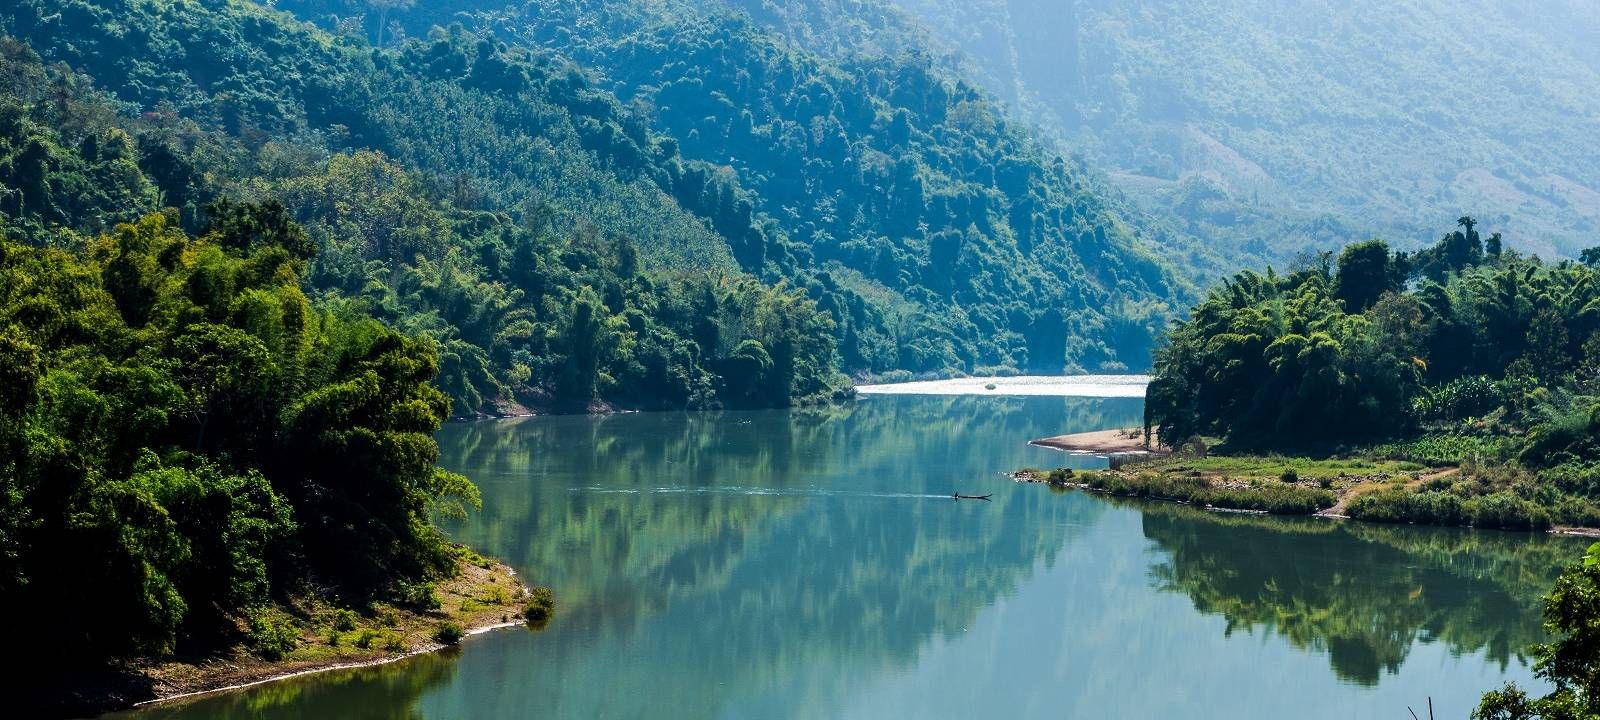 Vietnam is rich in natural beauty